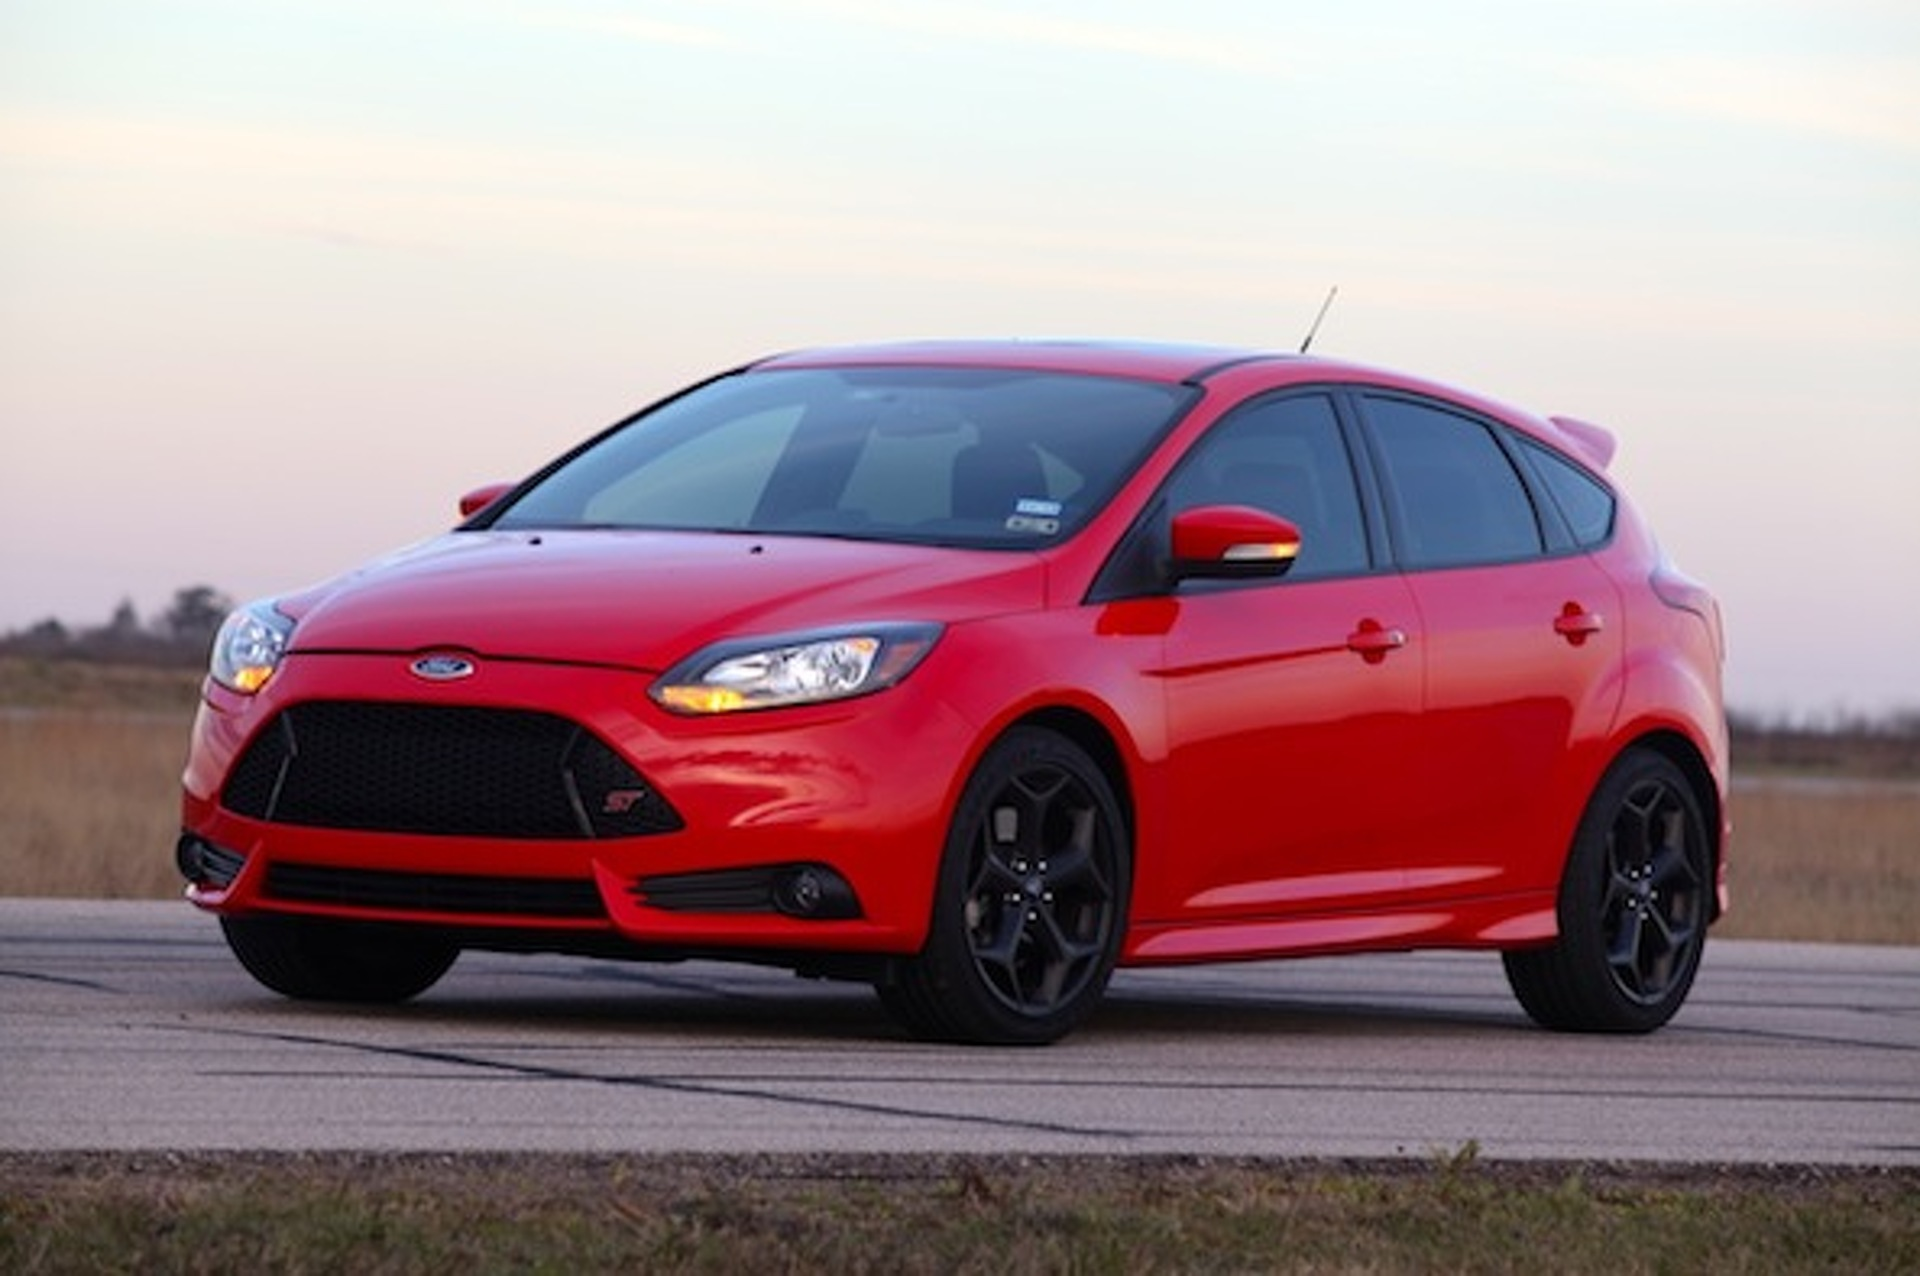 John Hennessey Tunes His Personal HPE300 Ford Focus ST [w/video]